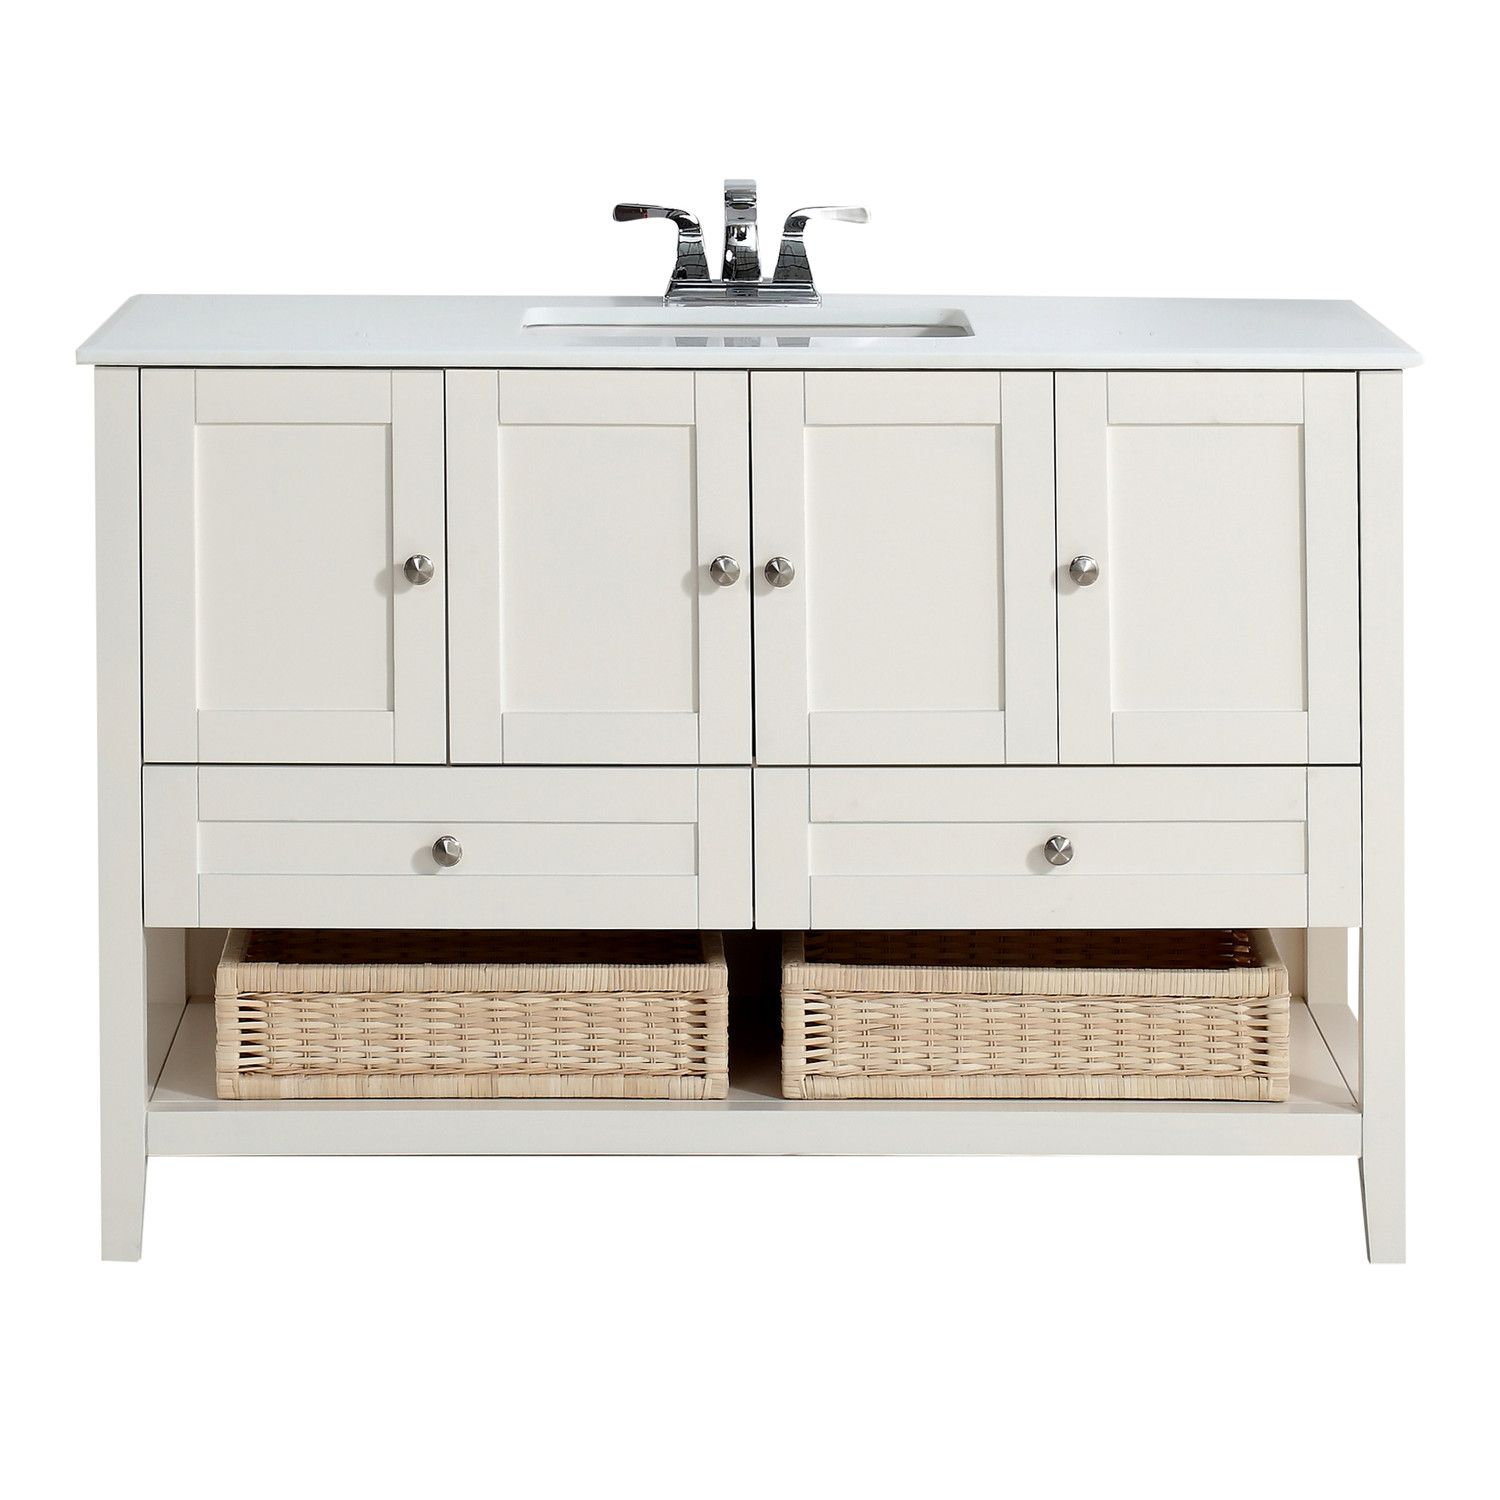 "Simpli Home Cape Cod 49"" Single Bathroom Vanity Set"